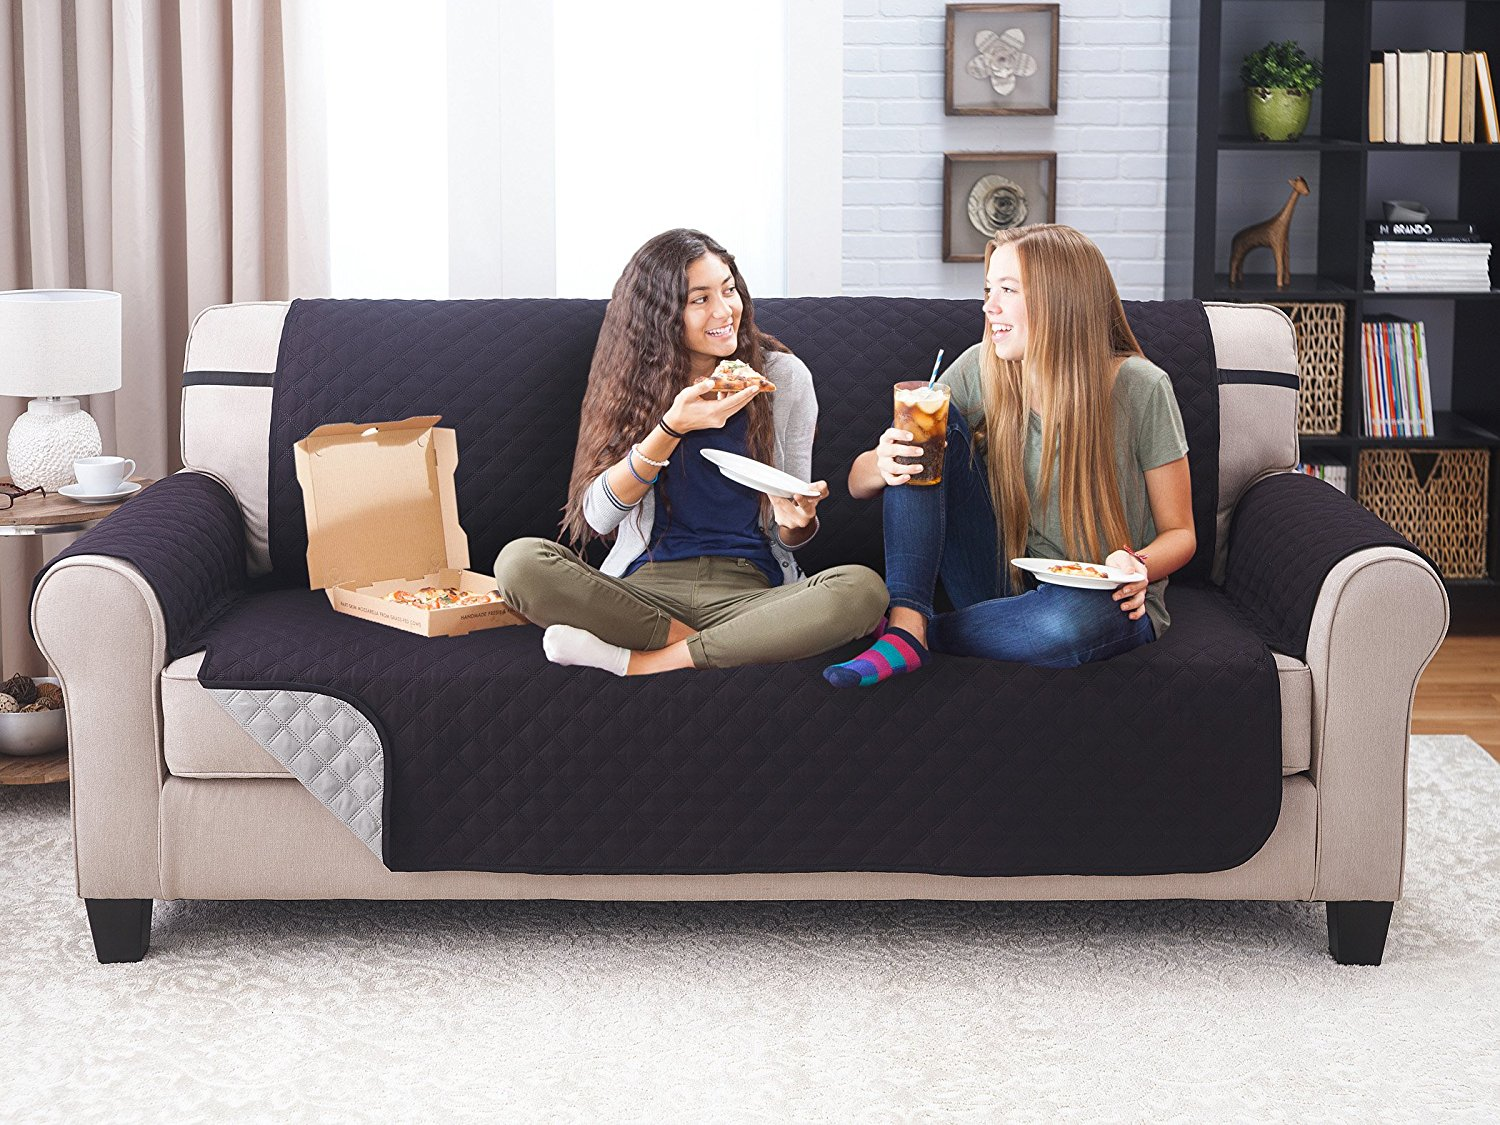 Astounding Kcasa Kc Pcp1 Reversible Quilted Furniture Protector Cover Solid Color Recliner Sofa Cover Home Decor Lamtechconsult Wood Chair Design Ideas Lamtechconsultcom